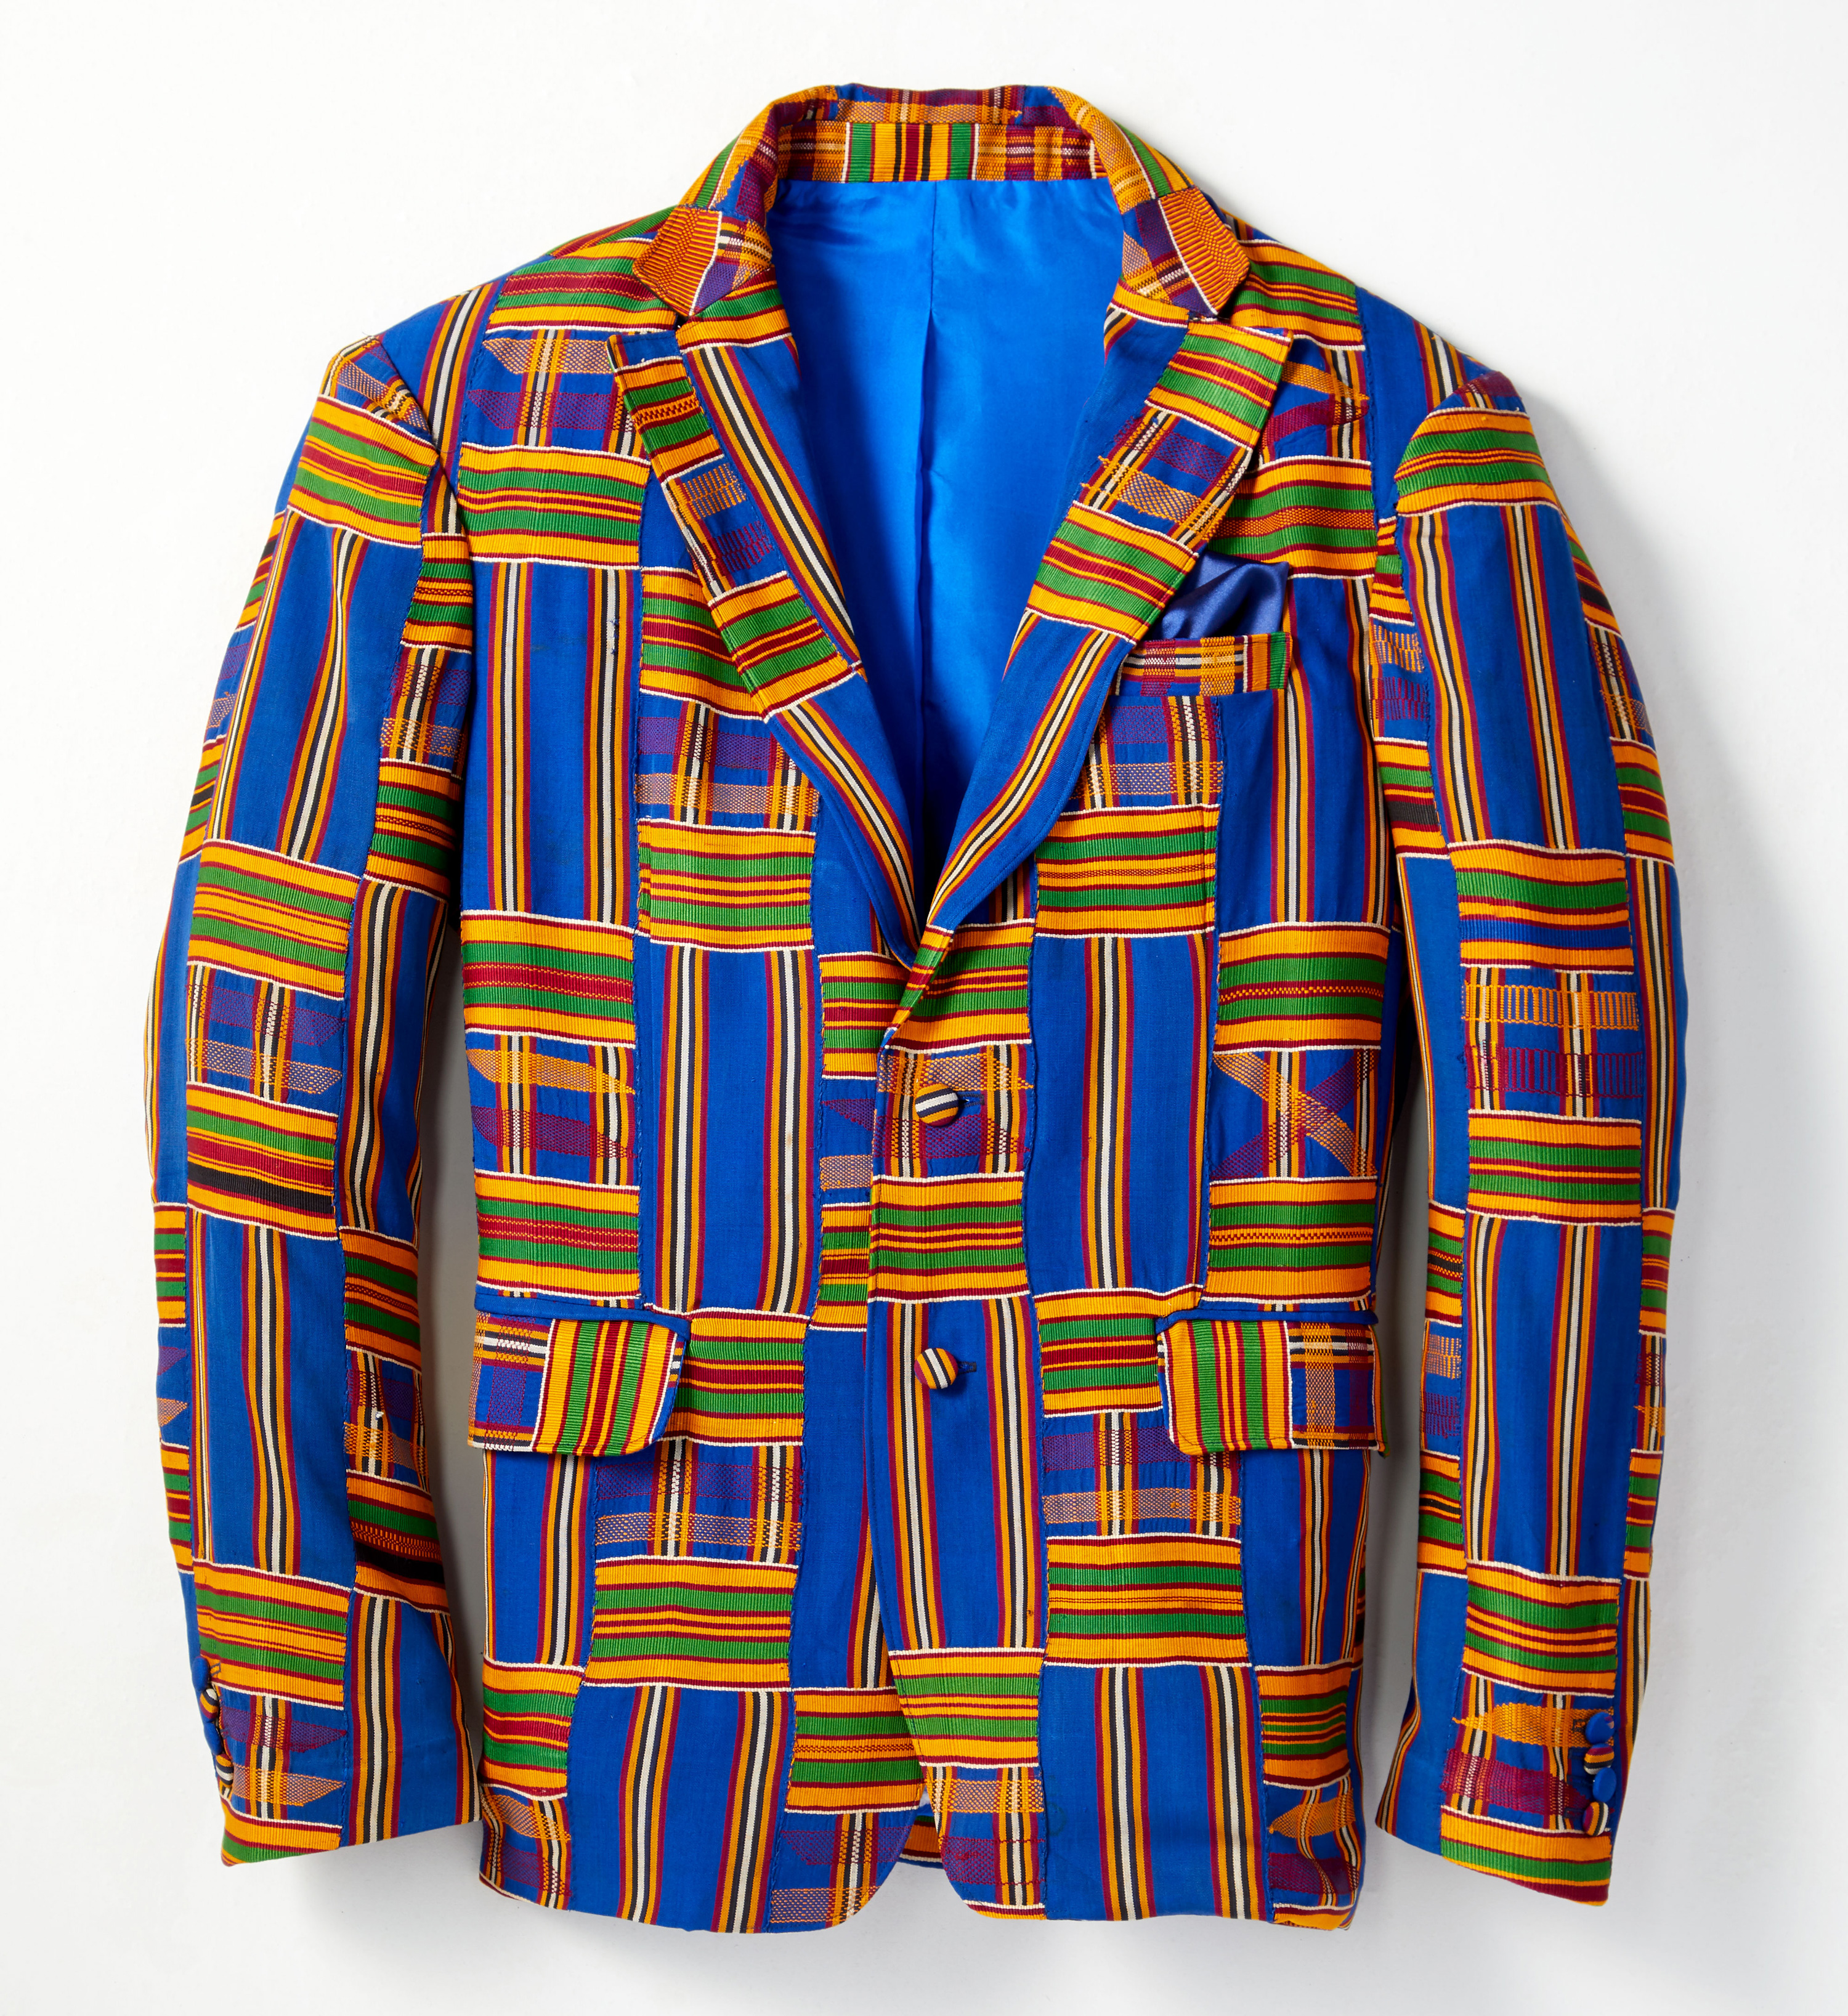 Custom Sports Jacket made of Kente Cloth. Photo by Adam Brown